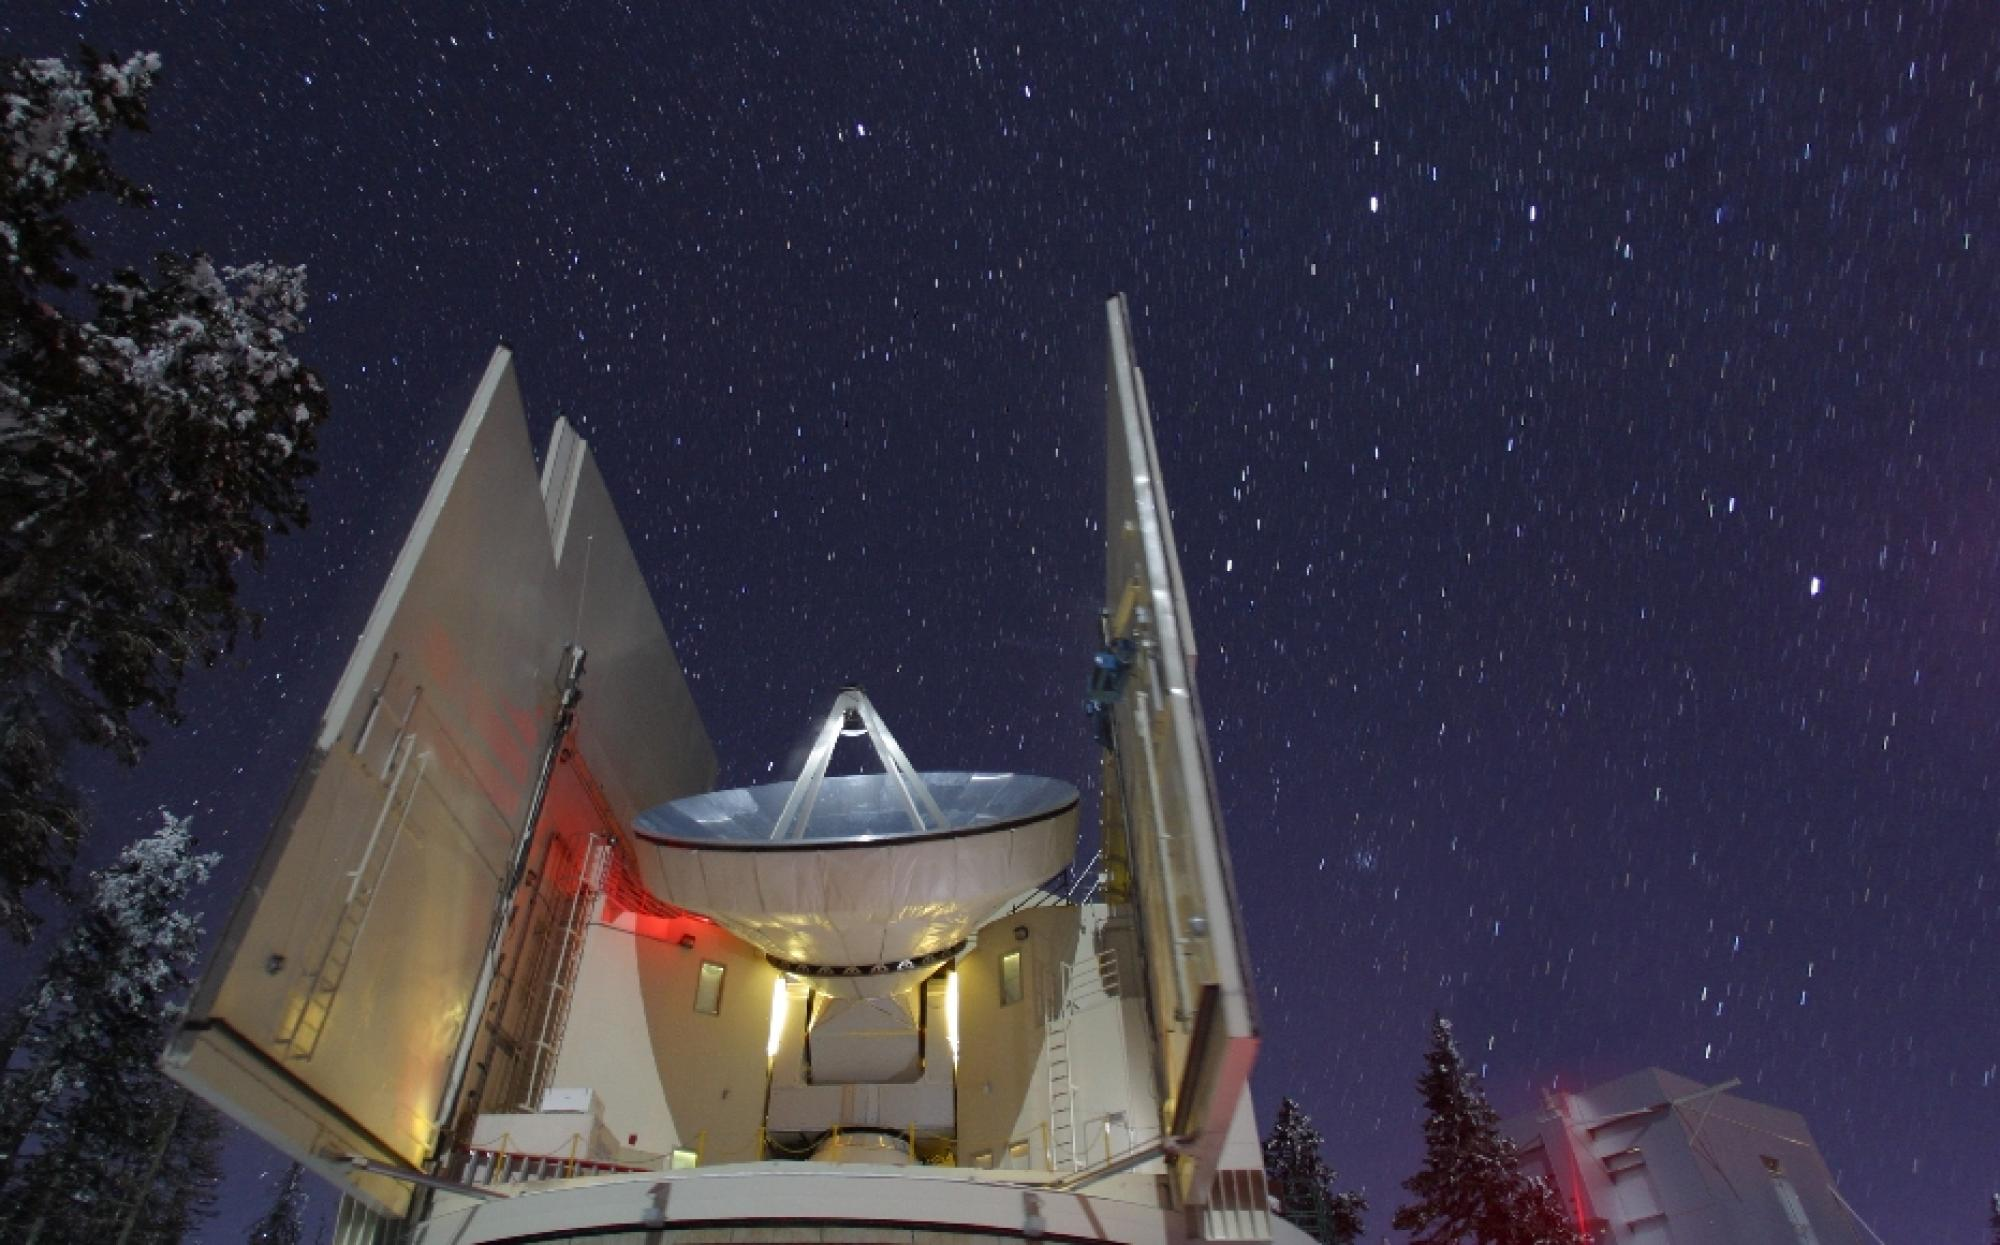 The Arizona Radio Observatory SubMillimeter Telescope, Mount Graham